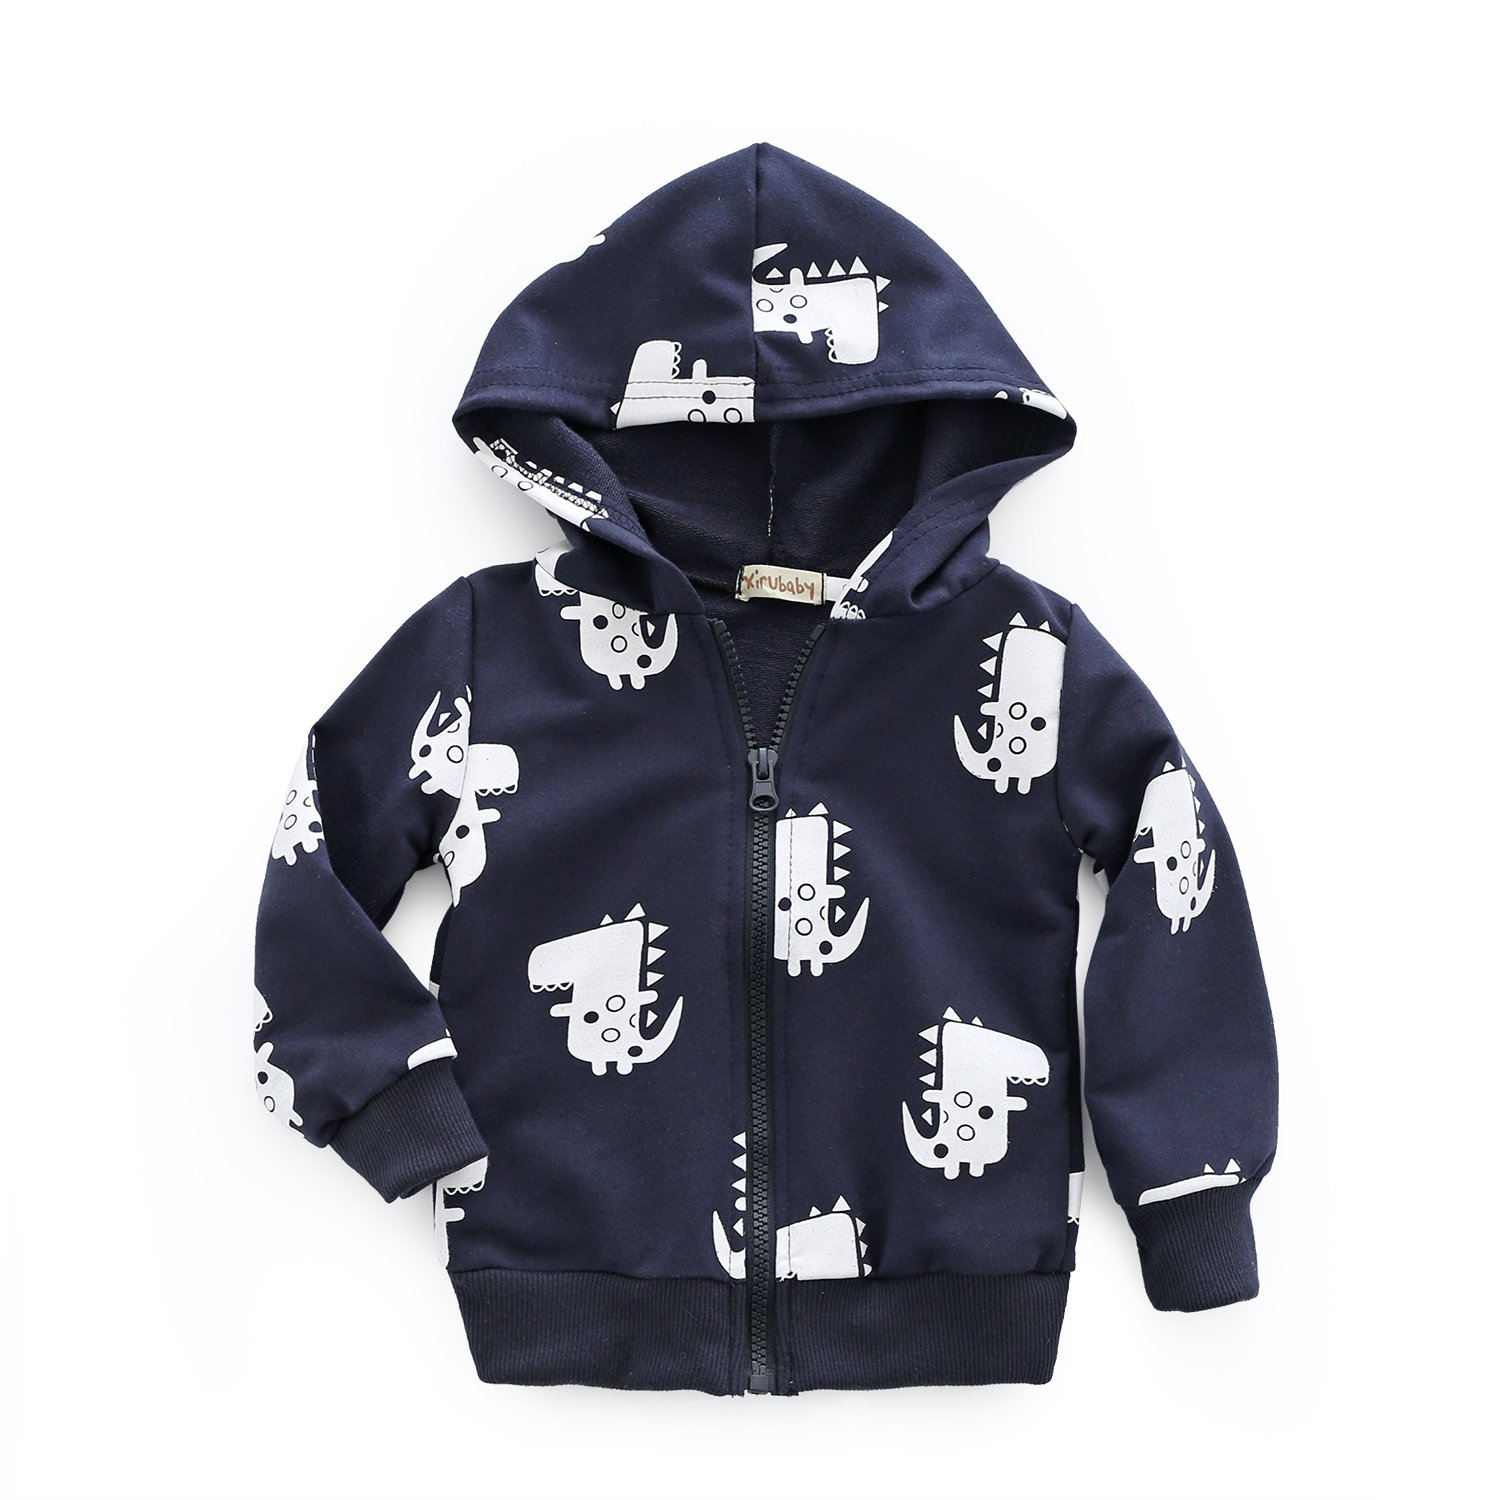 Dealone Baby Boy Zip Front Hoodie Sweathshirt Toddler Dinosaur Jacket Clothes BC0819